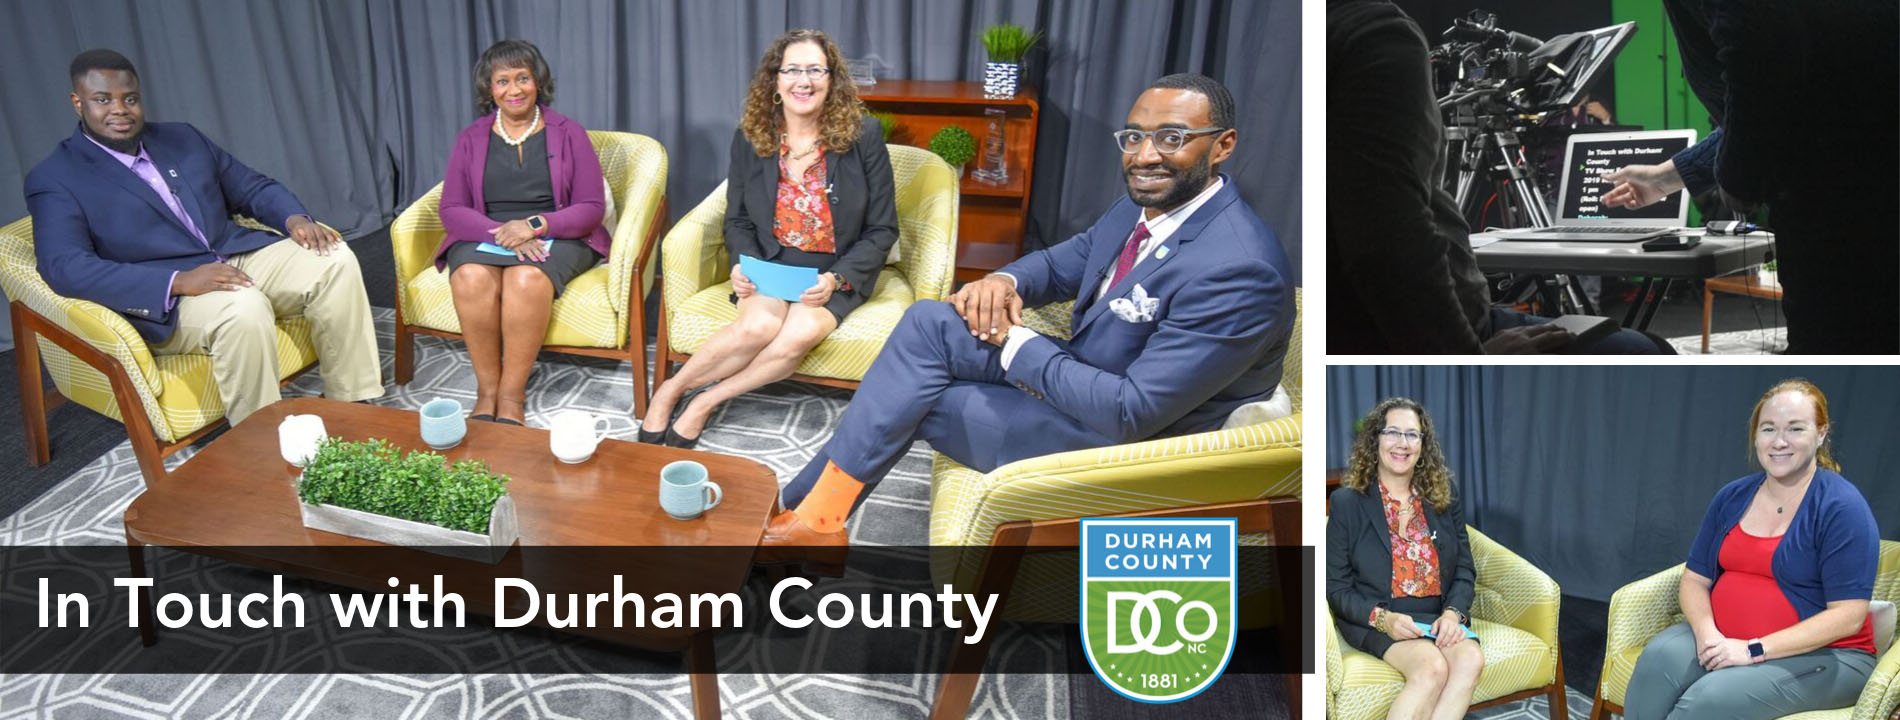 In Touch with Durham County promo with guests sitting at chairs and shot of teleprompter